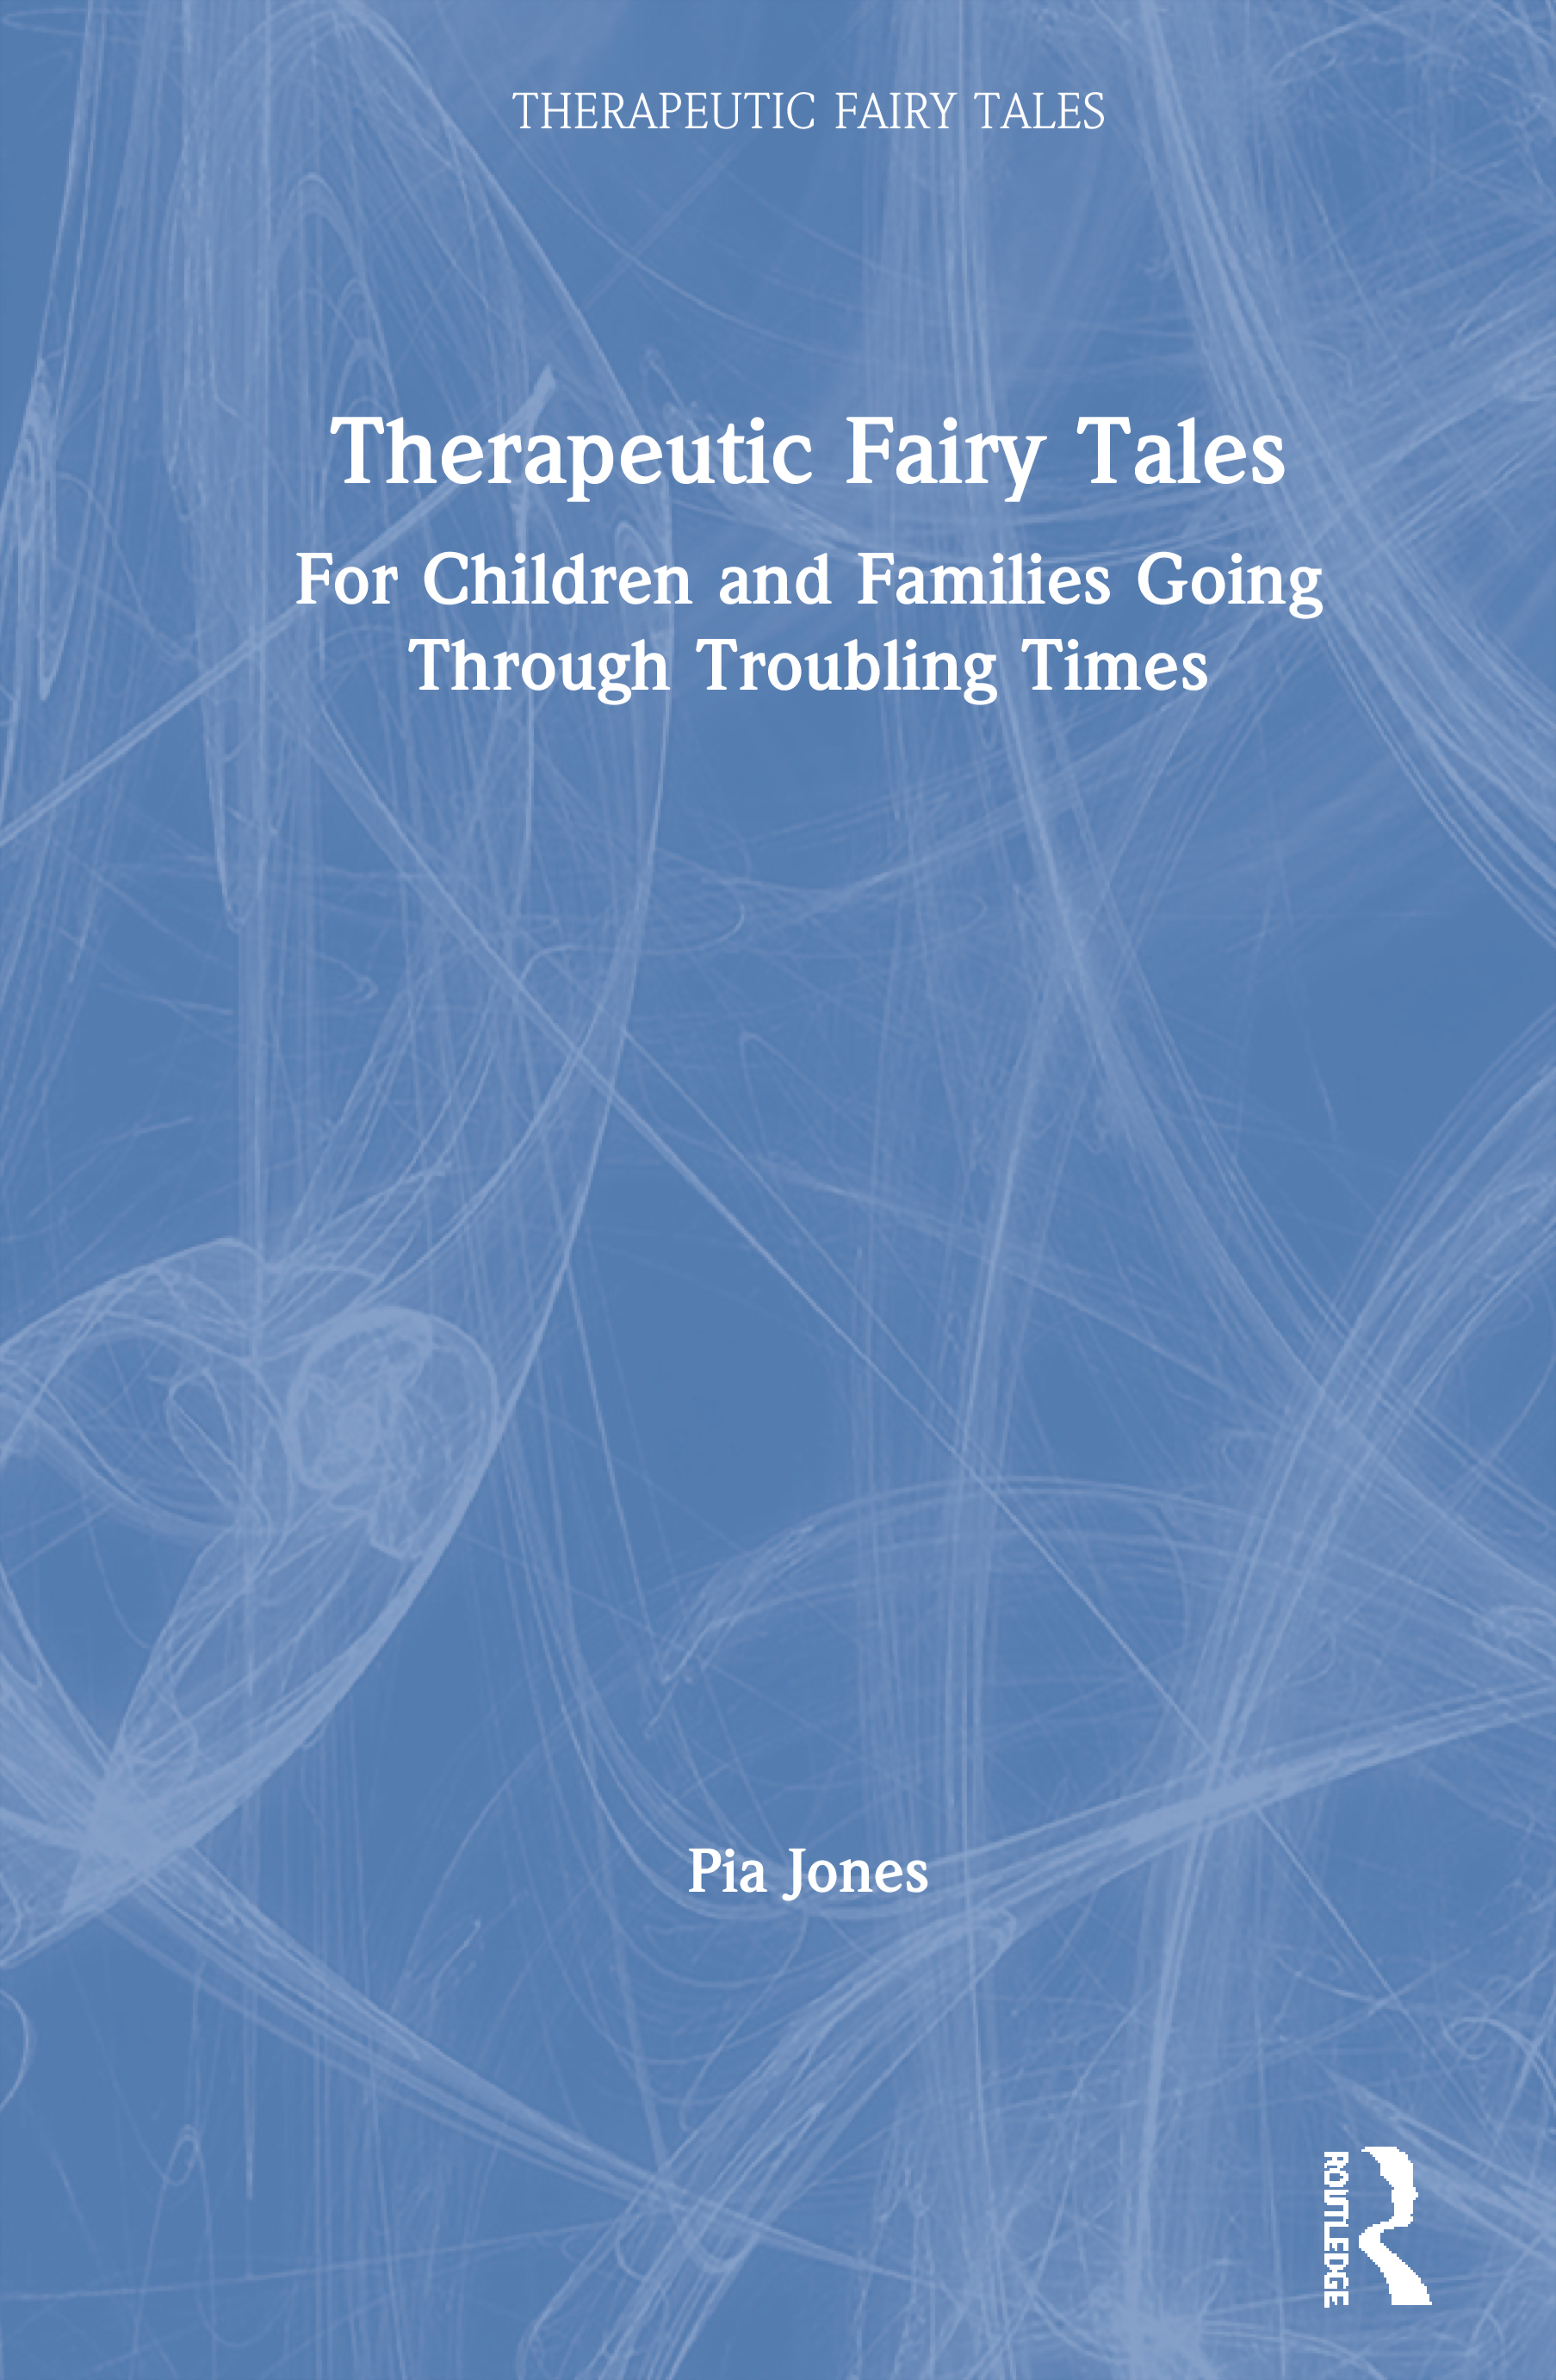 Therapeutic Fairy Tales: For Children and Families Going Through Troubling Times book cover